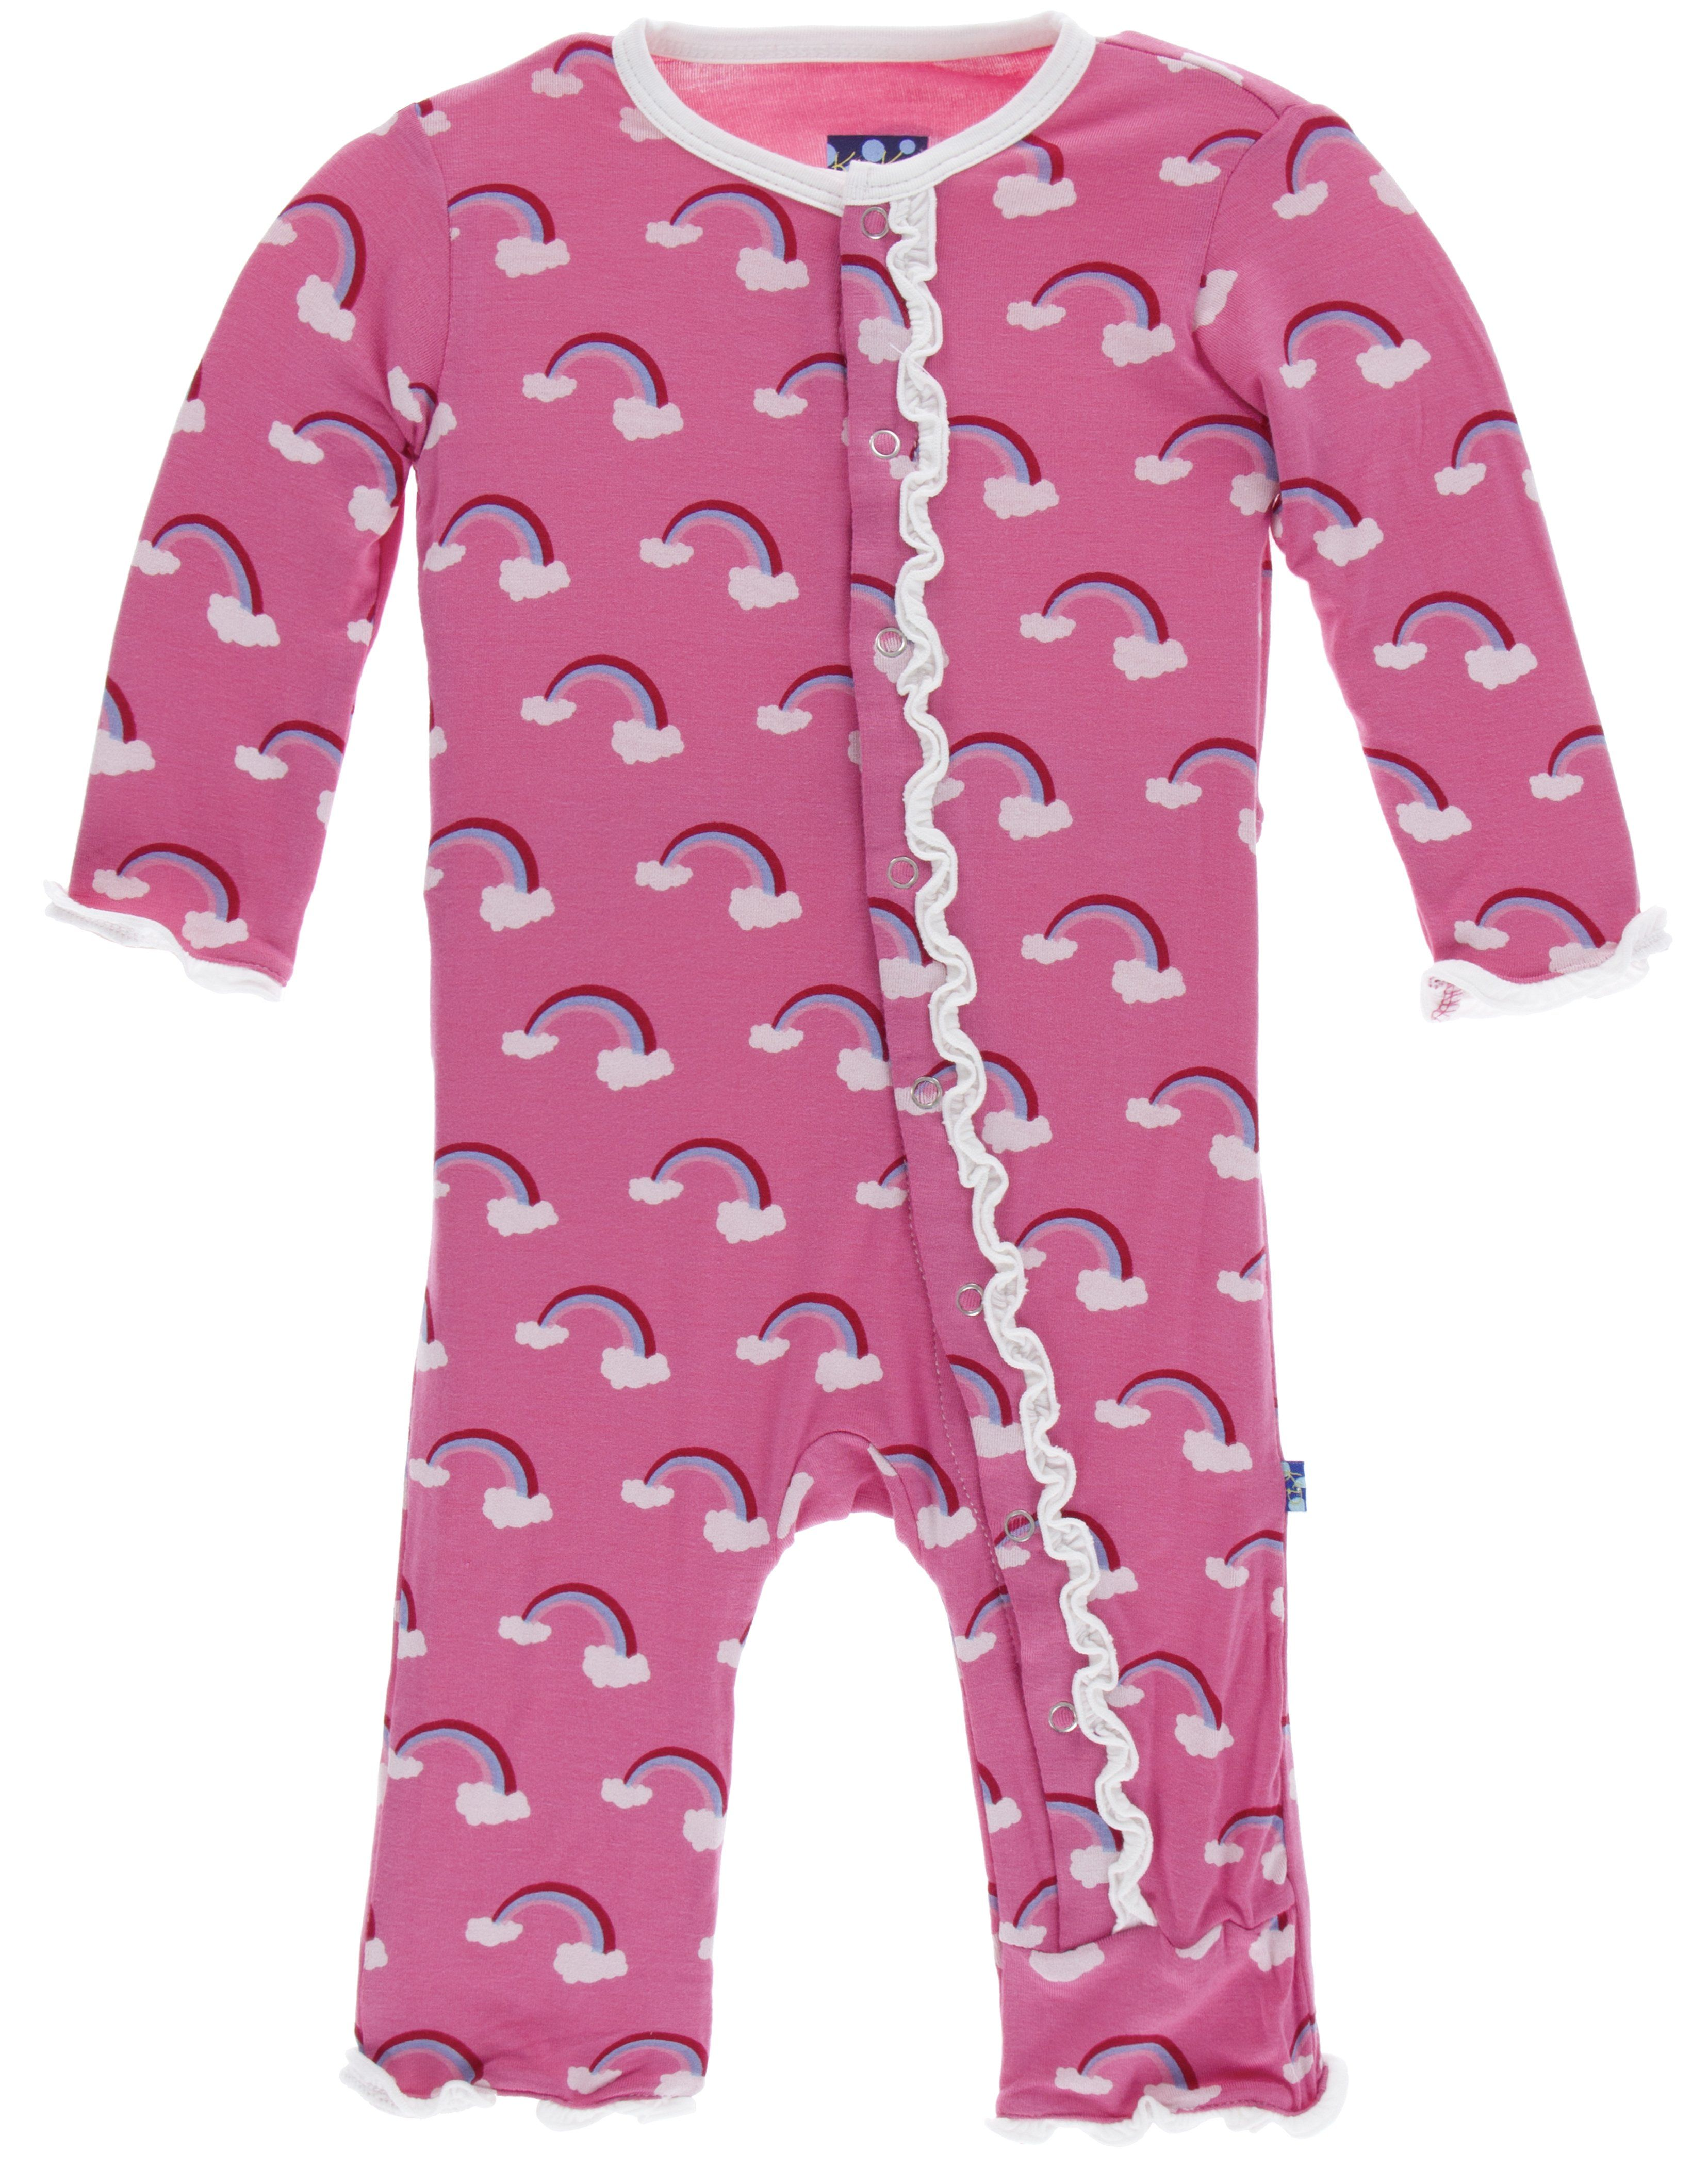 3ff4893ecf15 KicKee Pants Flamingo Rainbow Muffin Ruffle Coverall with Snaps ...